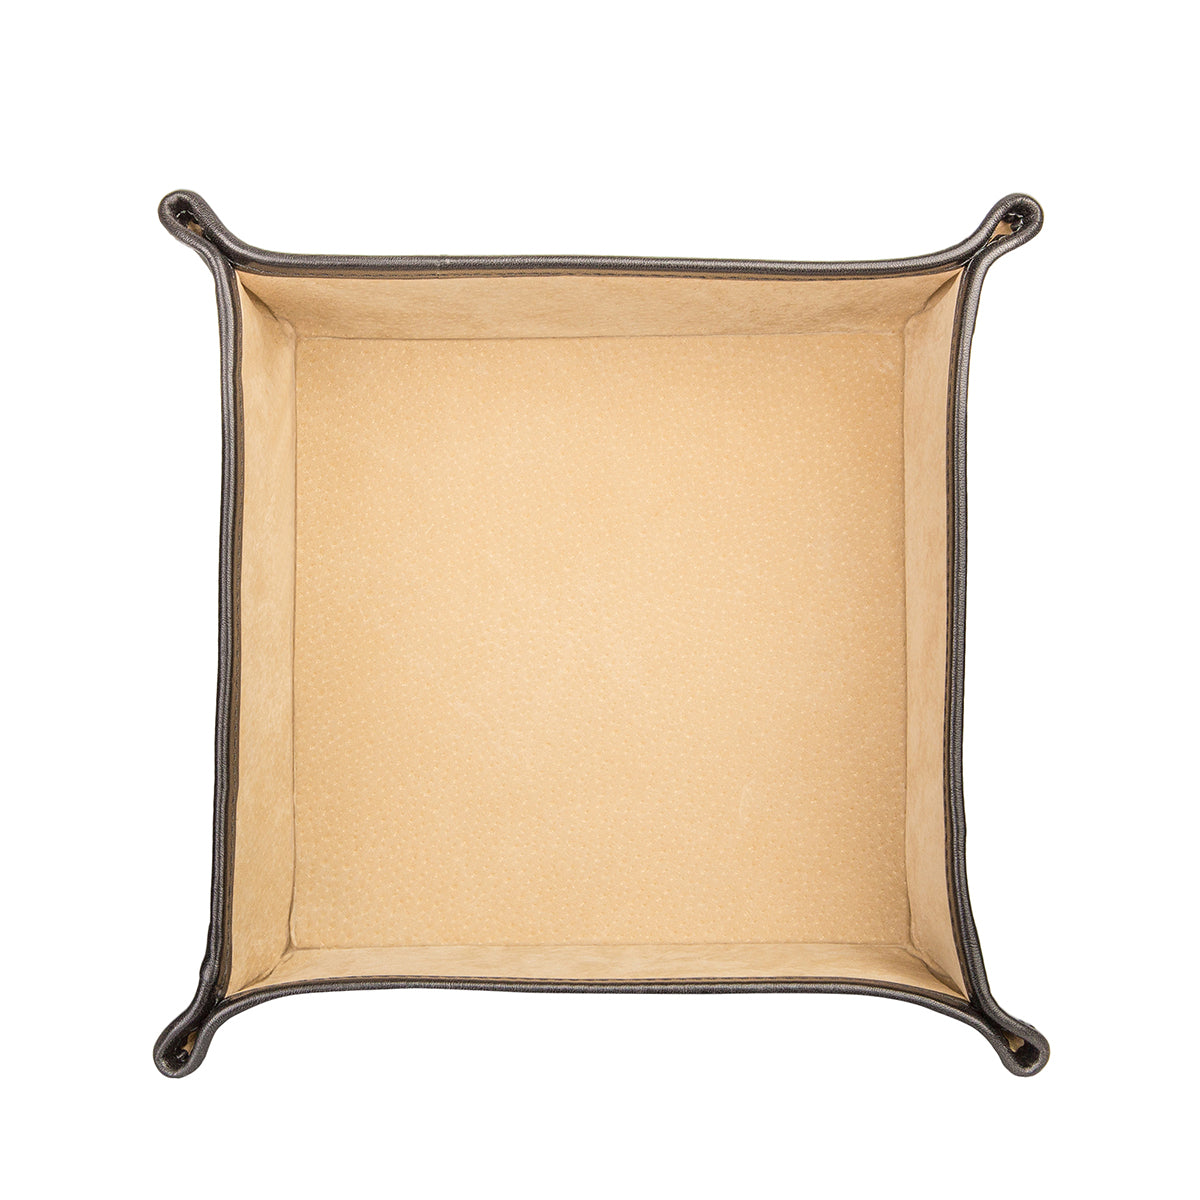 Image 4 of the 'Ilario' Black Leather Tidy Tray